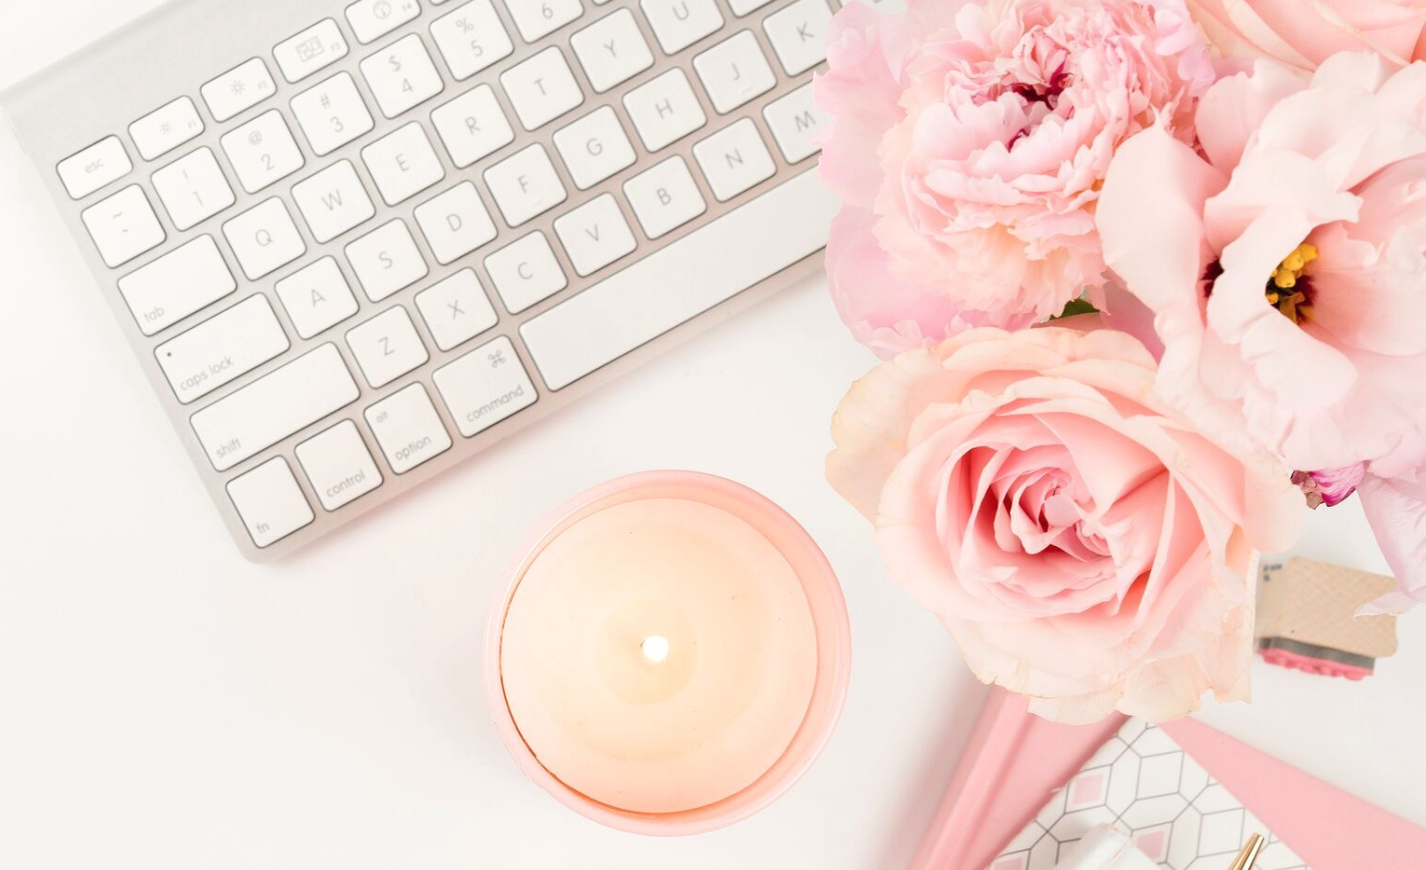 Blogger's Guide To Working With Brands